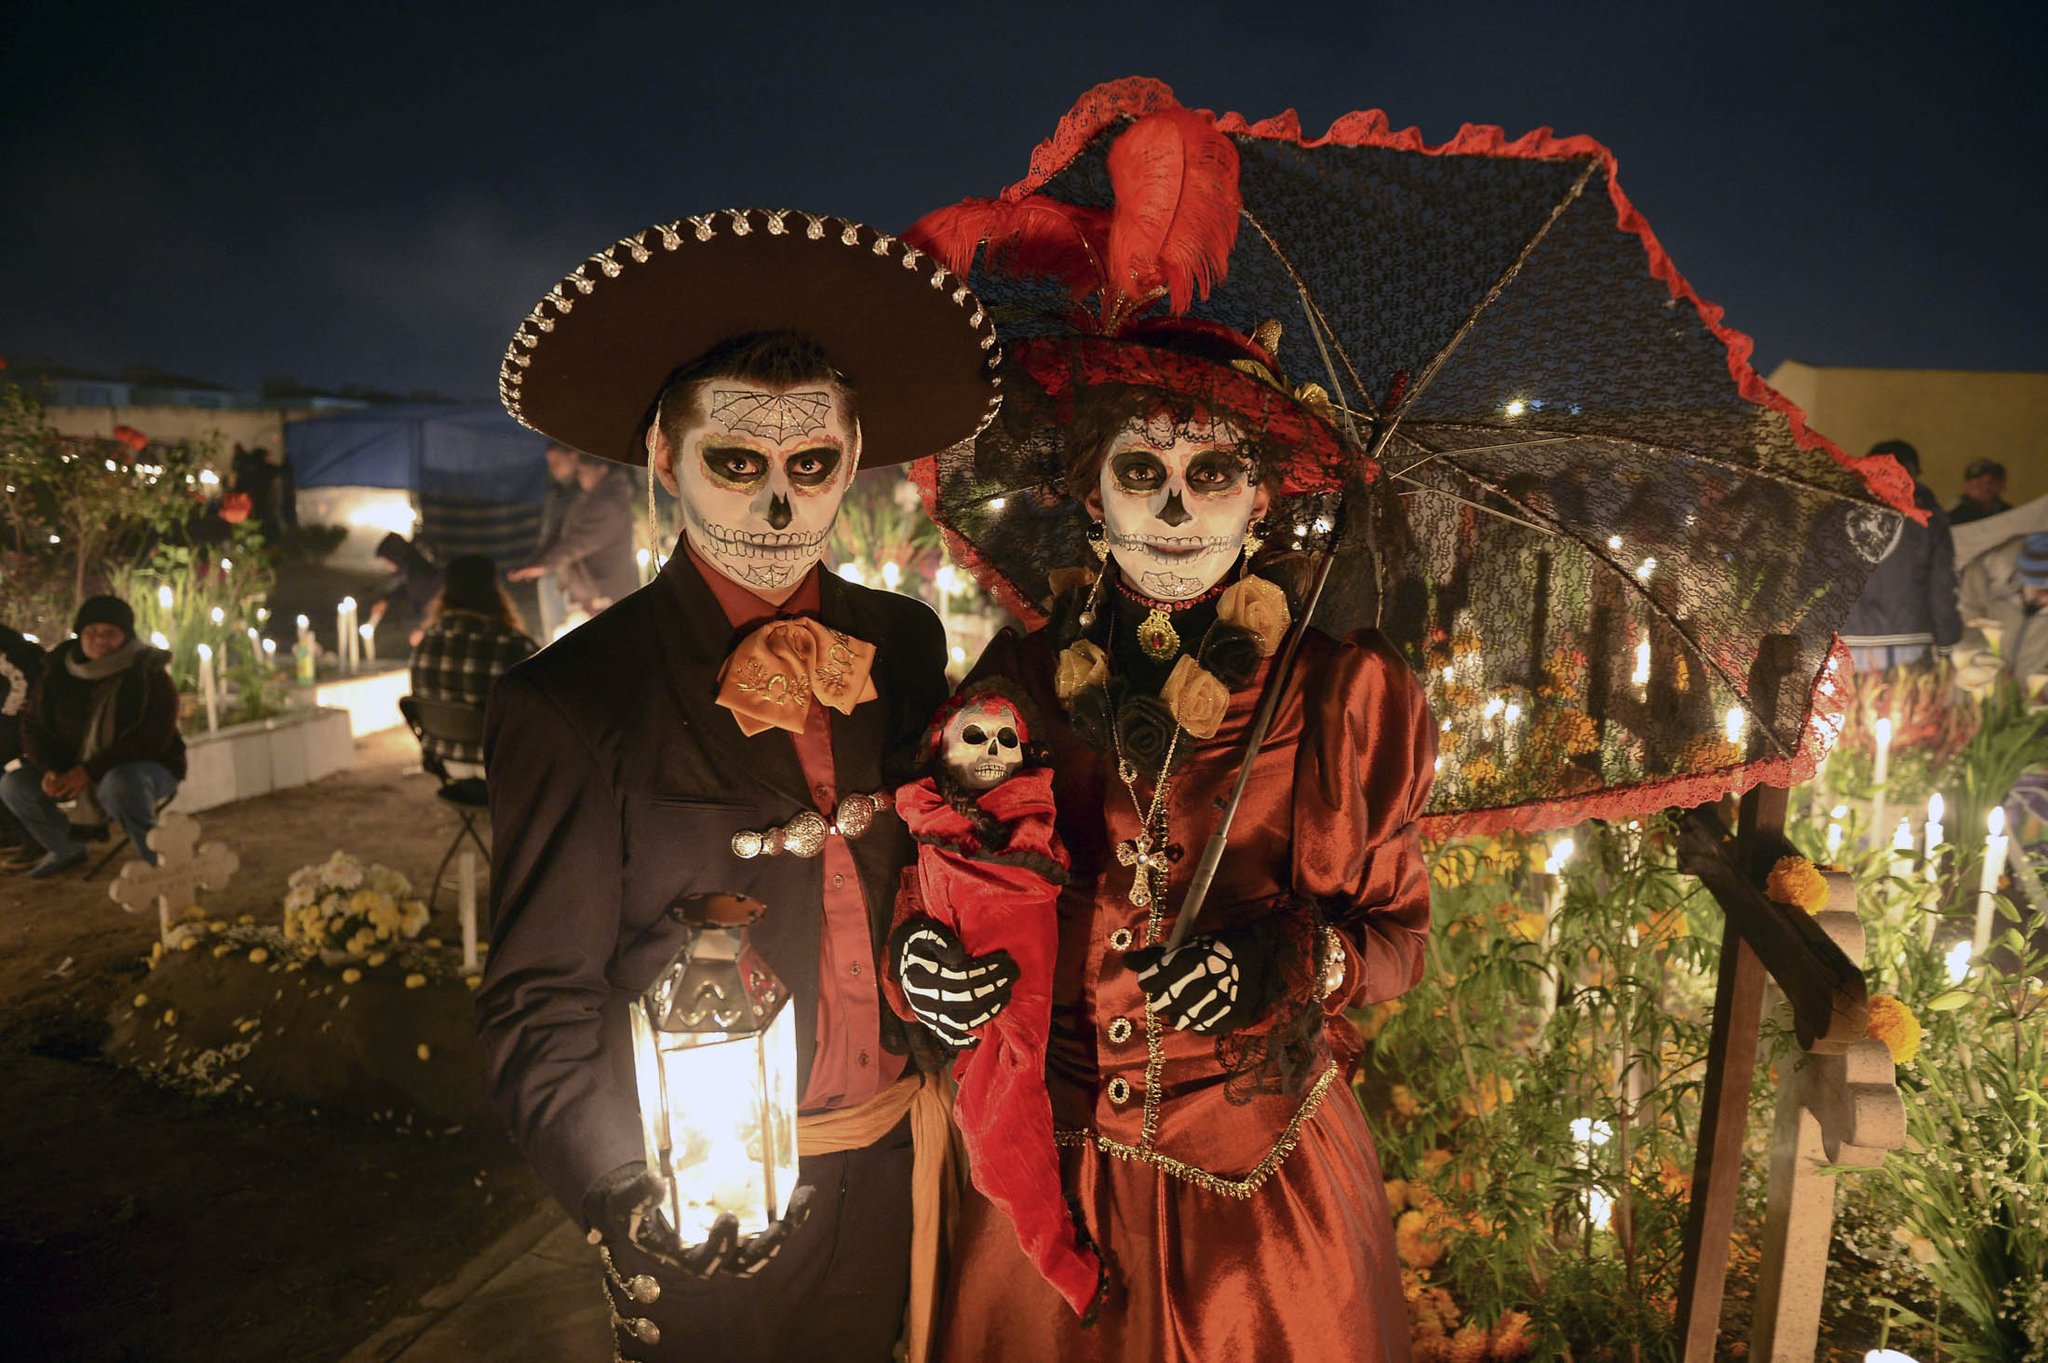 If you want to experience Mexico's Day of the Dead, you need to plan it now https://t.co/Ax2fCuiUtb https://t.co/rAFU0dedaJ